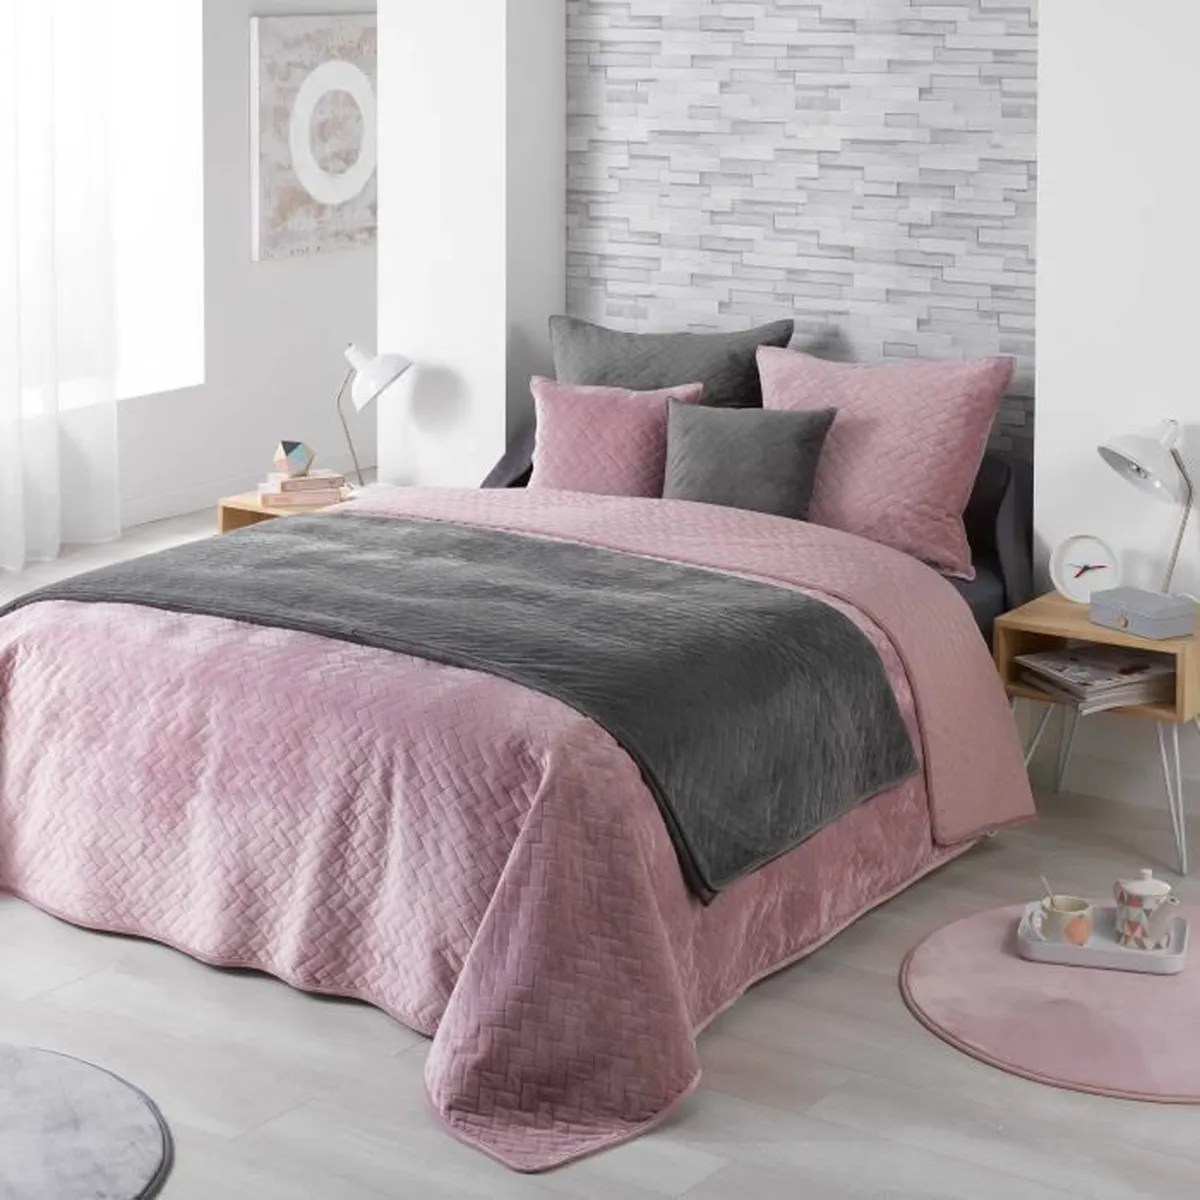 Couverture Lit 2 Places Couvre Lit 2 Pers Matelasse 220 X 240 Cm Velours Uni Bellanda Rose